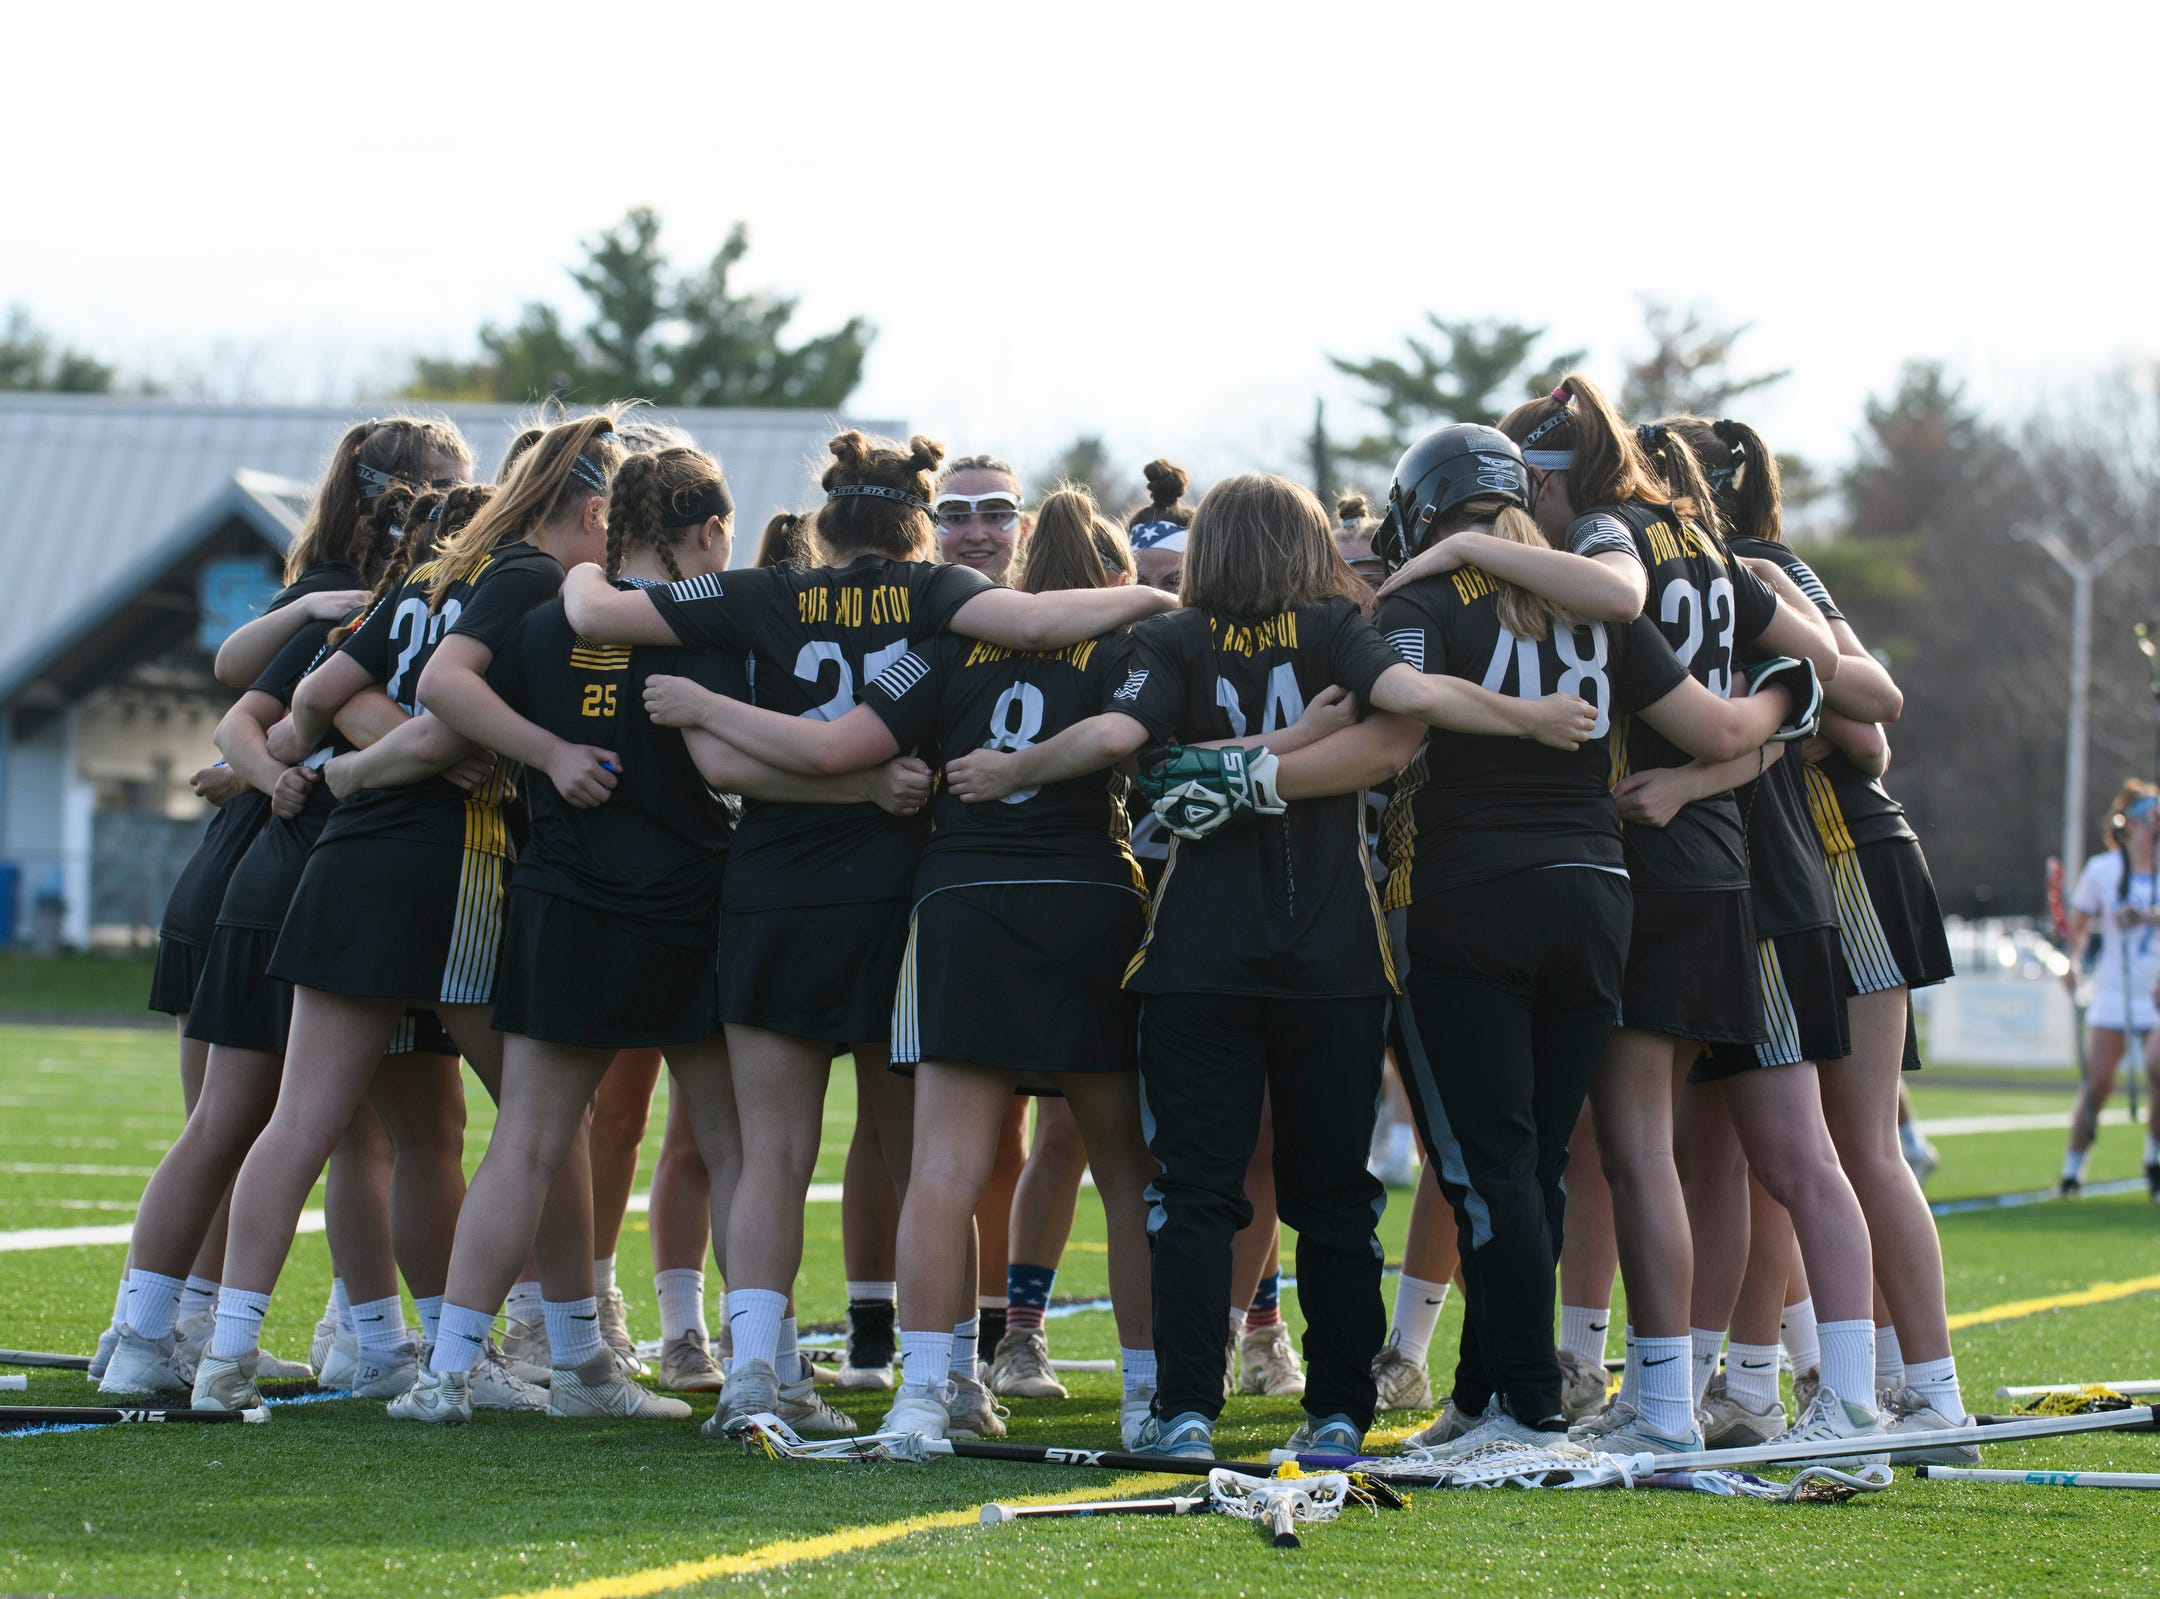 Burr and Burton huddles together during the high school girls lacrosse game between Burr and Burton Bulldogs and the South Burlington Wolves at Munson Field on Monday afternoon May 6, 2019 in South Burlington, Vermont.